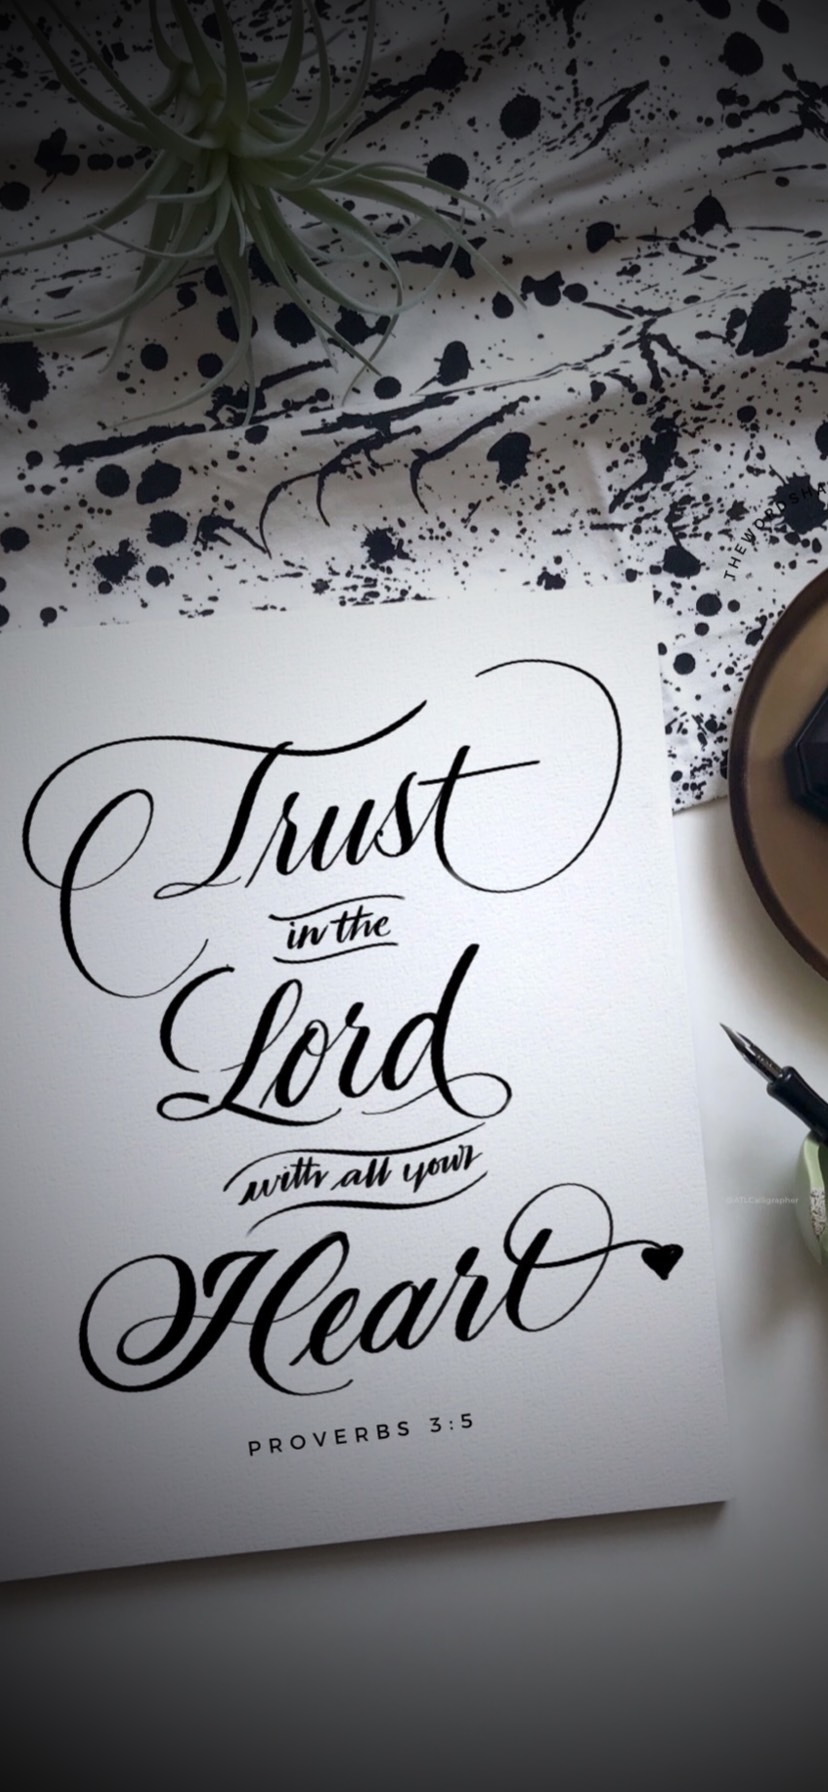 Wallpaper-Trust In the Lord